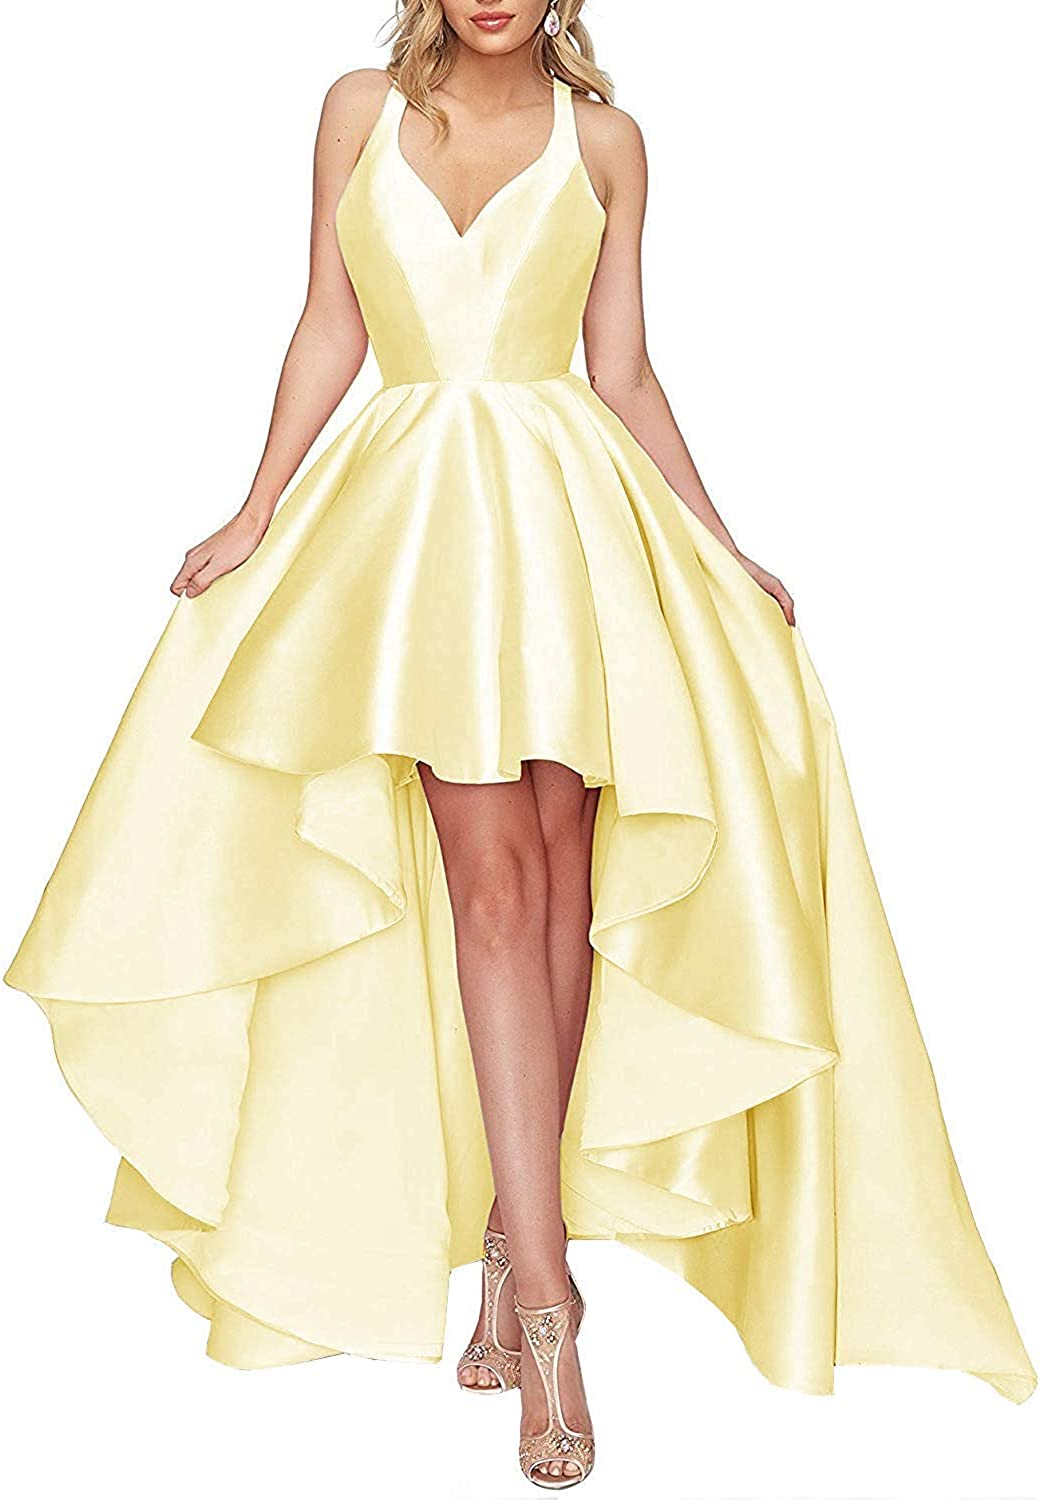 JAEDEN Prom Dress with Pocket High Low Formal Evening Gowns Hater Prom Gowns Satin Prom Dresses